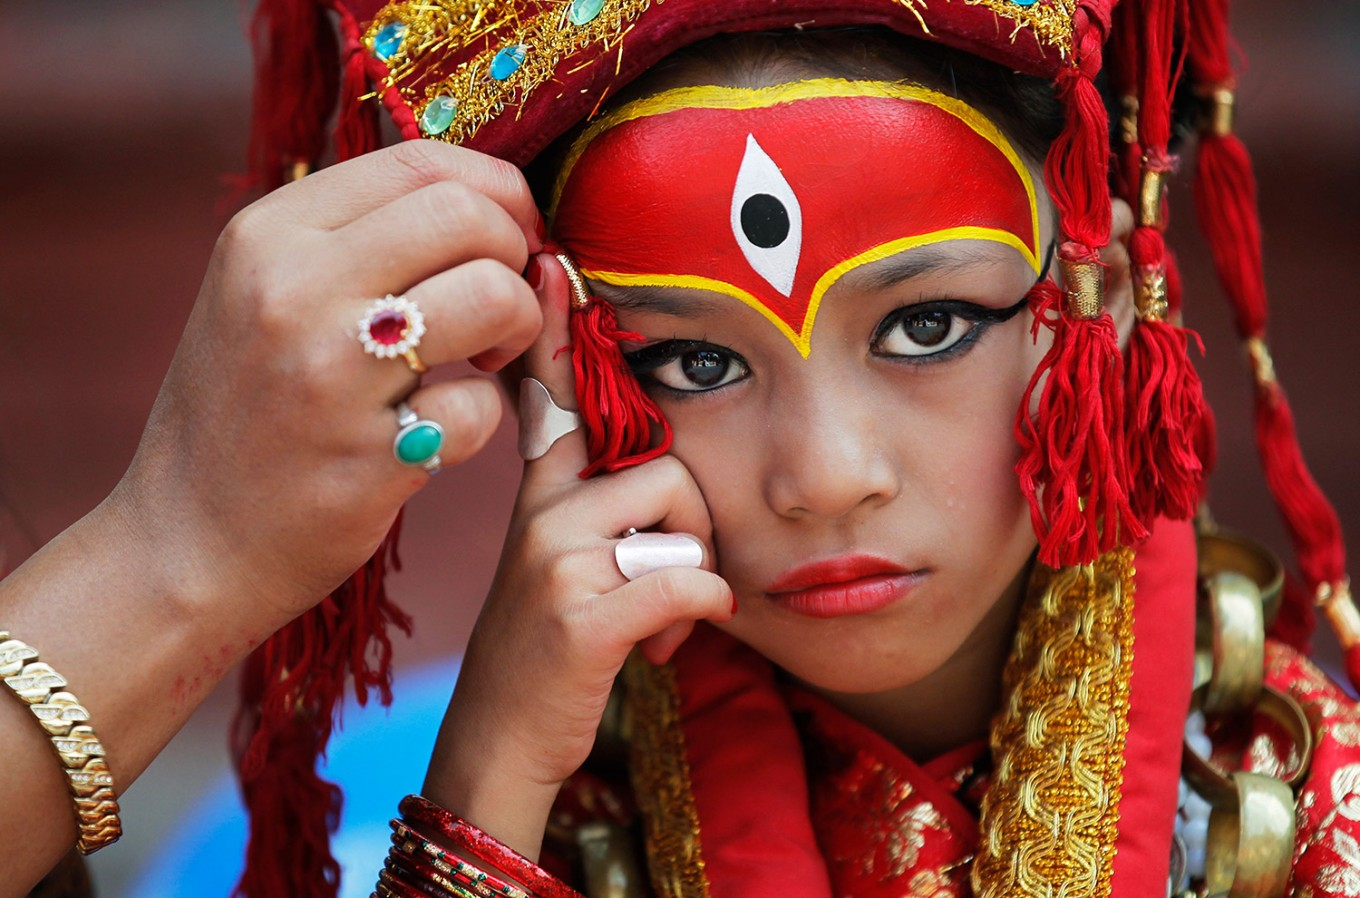 A Nepalese mother applies make up to her daughter dressed as the living goddess Kumari as they wait for Kumari puja to start at Hanuman Dhoka temple, in Kathmandu, Nepal, Wednesday, Sept. 14, 2016.